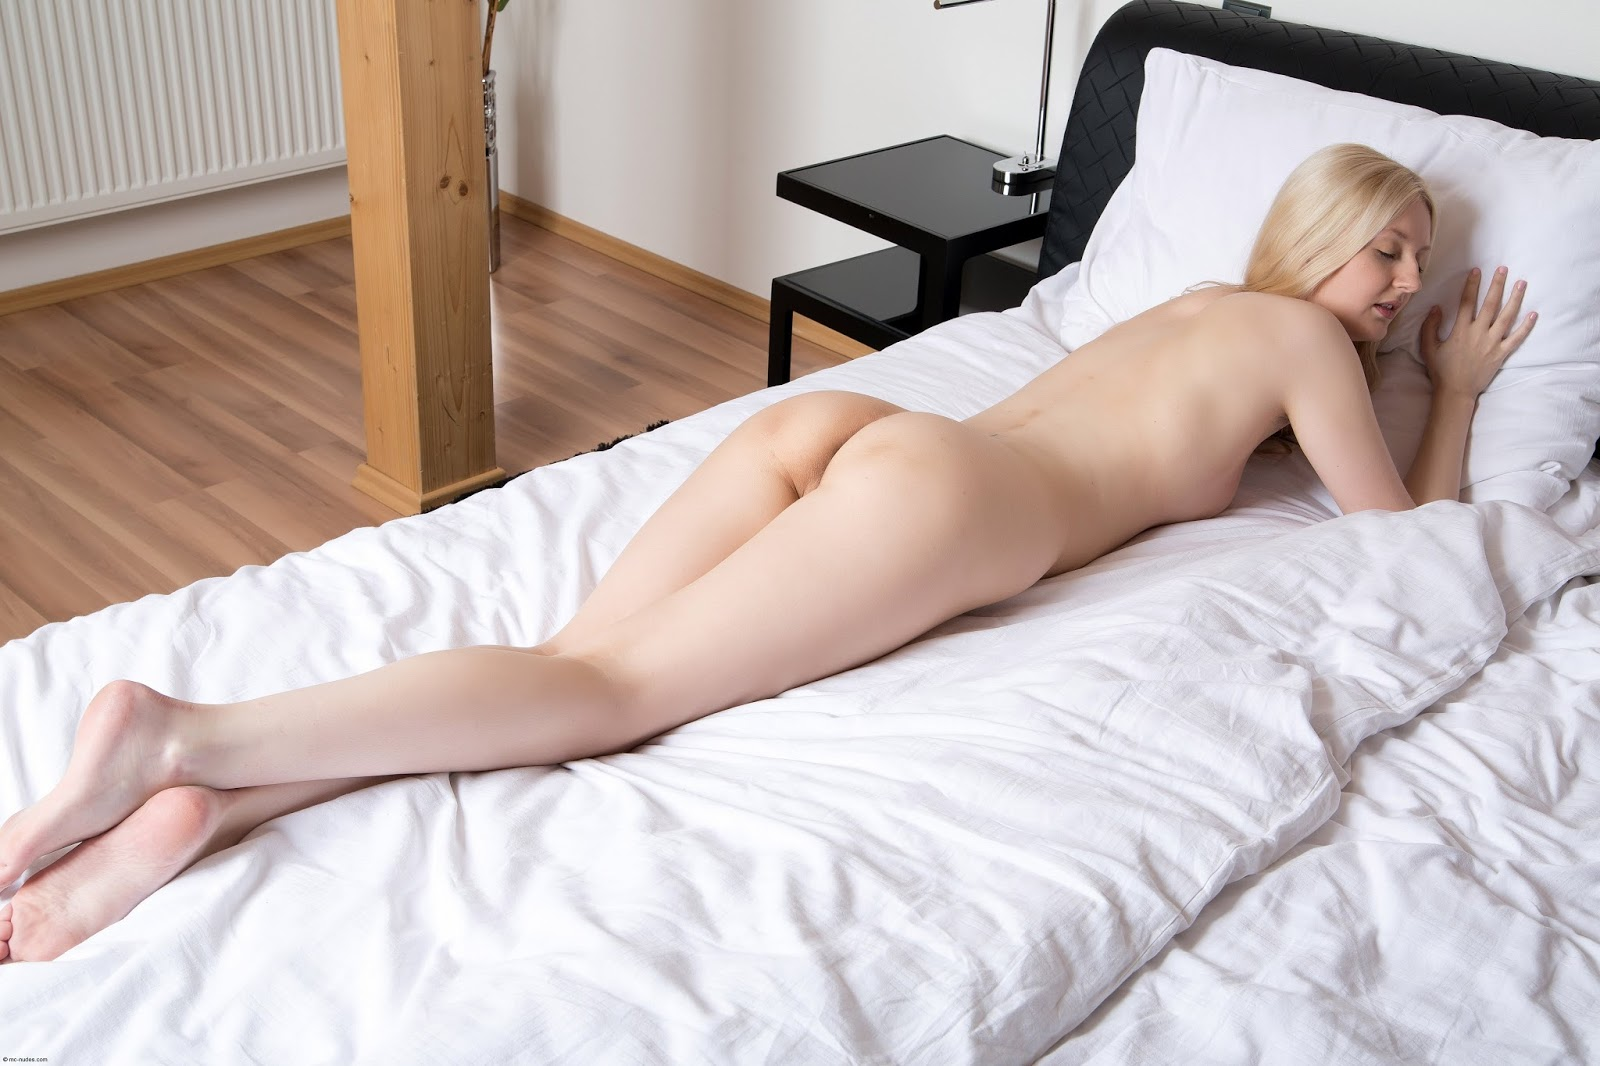 Gentle Teen Girl Demetra A Lays Naked On The Back In The Bedroom